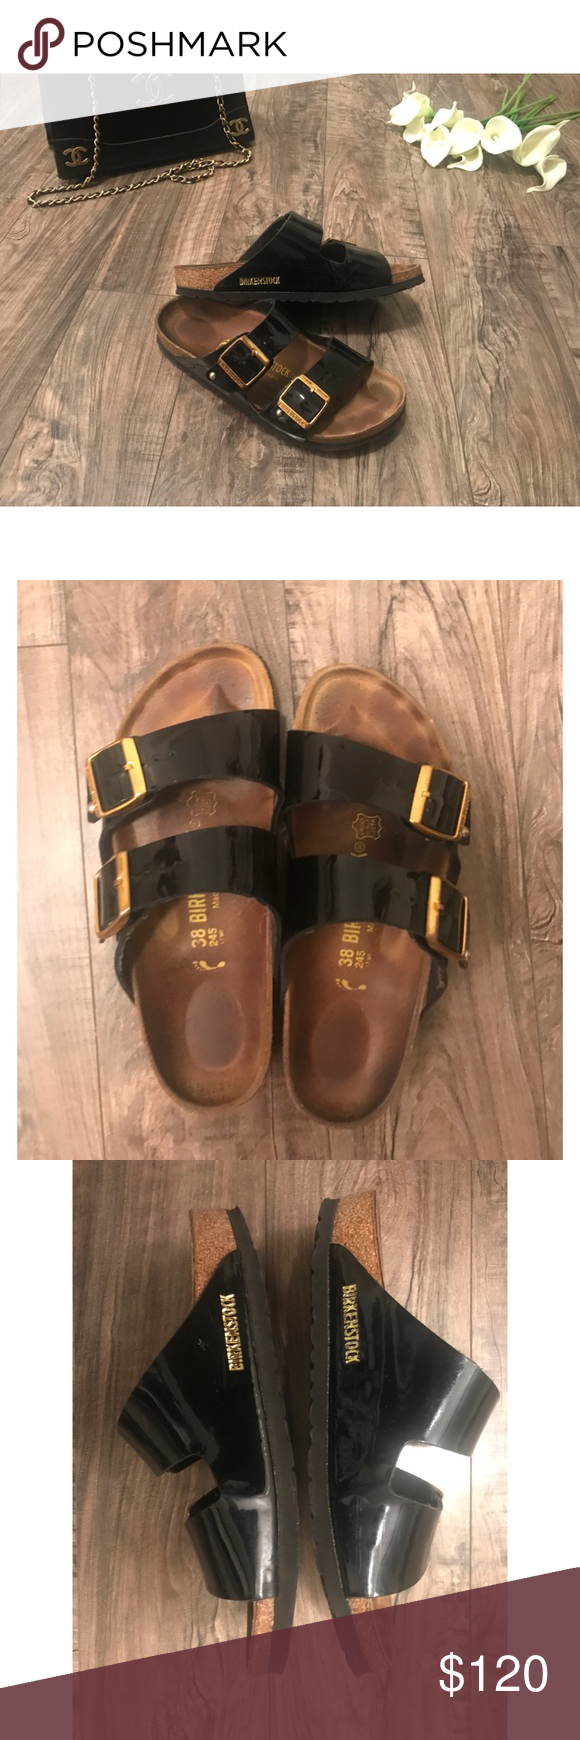 Arizona Patent Leather Black and Gold Birkenstock Patent Leather Black Birkenstock sandals with Gold buckle details. Sandals are in used pre-owned condition and shows  signs of wear. Size 8, made in Germany 🇩🇪 Birkenstock Shoes Sandals